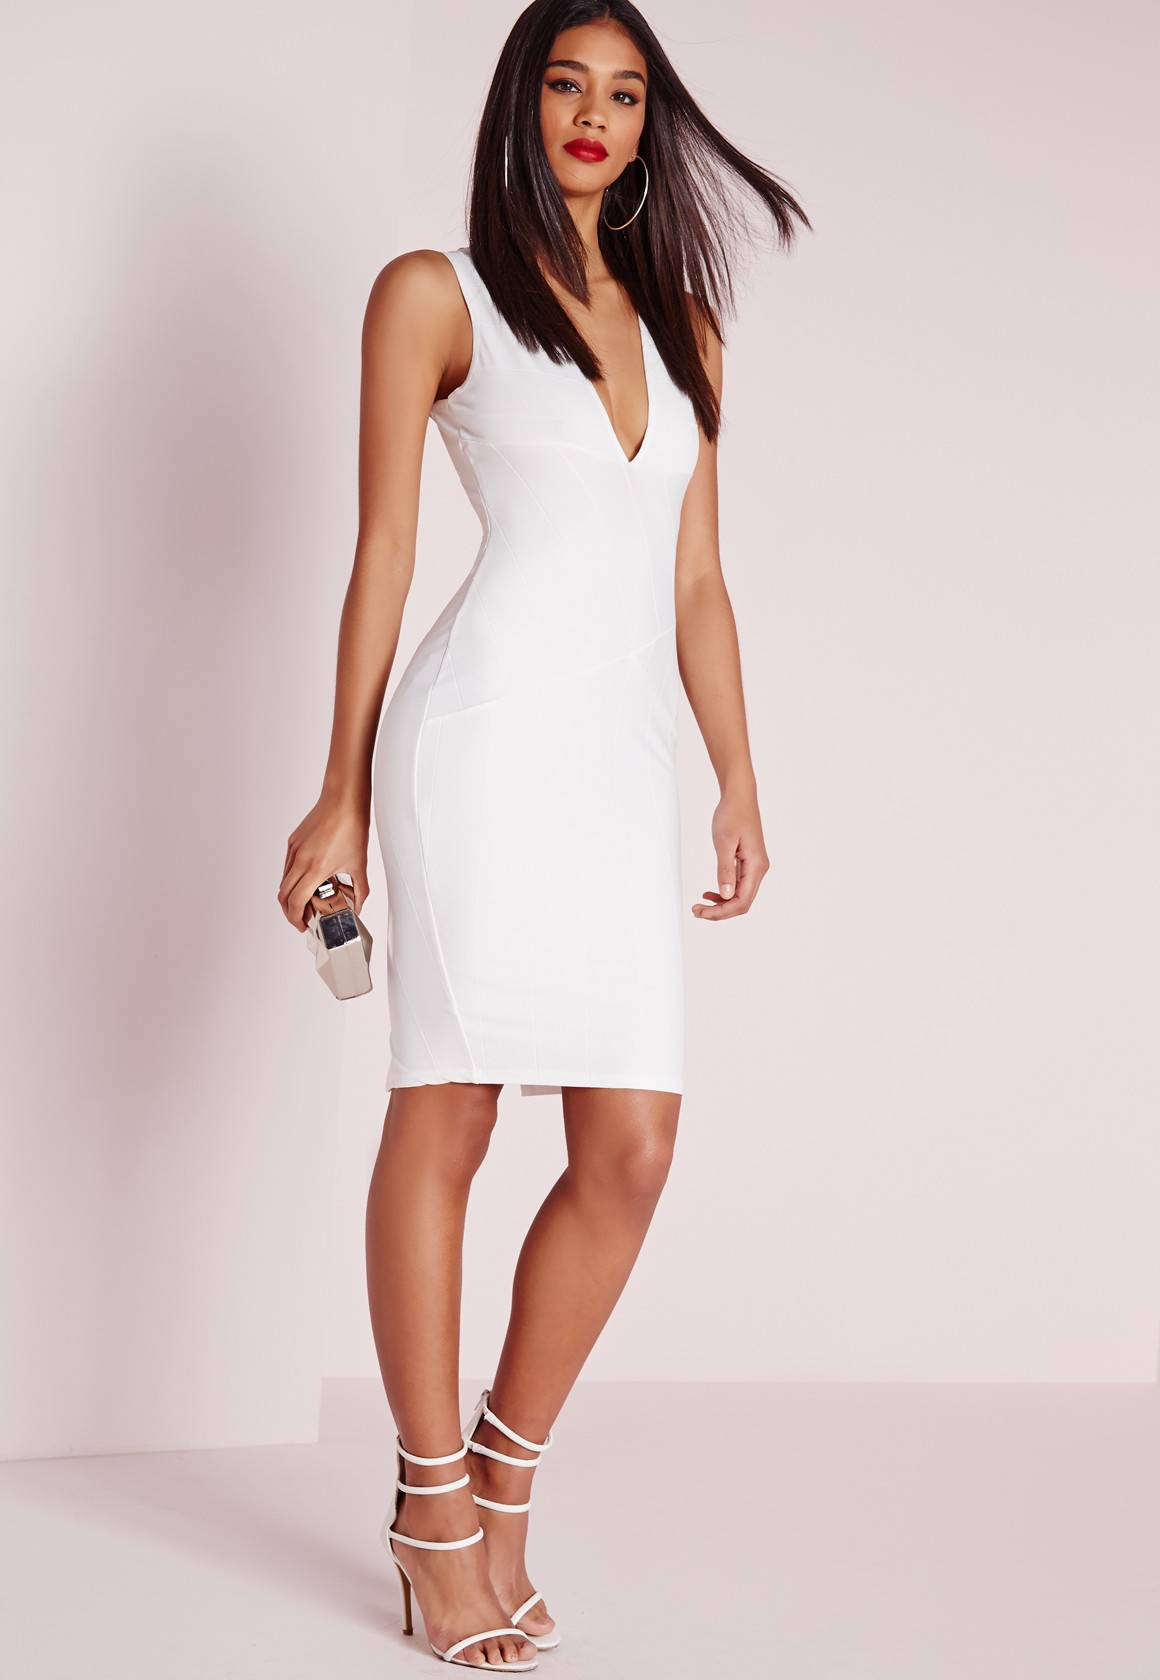 Discover the latest bodycon dresses with ASOS. Shop our range of bodycon dresses in midi, mini or long sleeve dress styles today in a variety of colours.